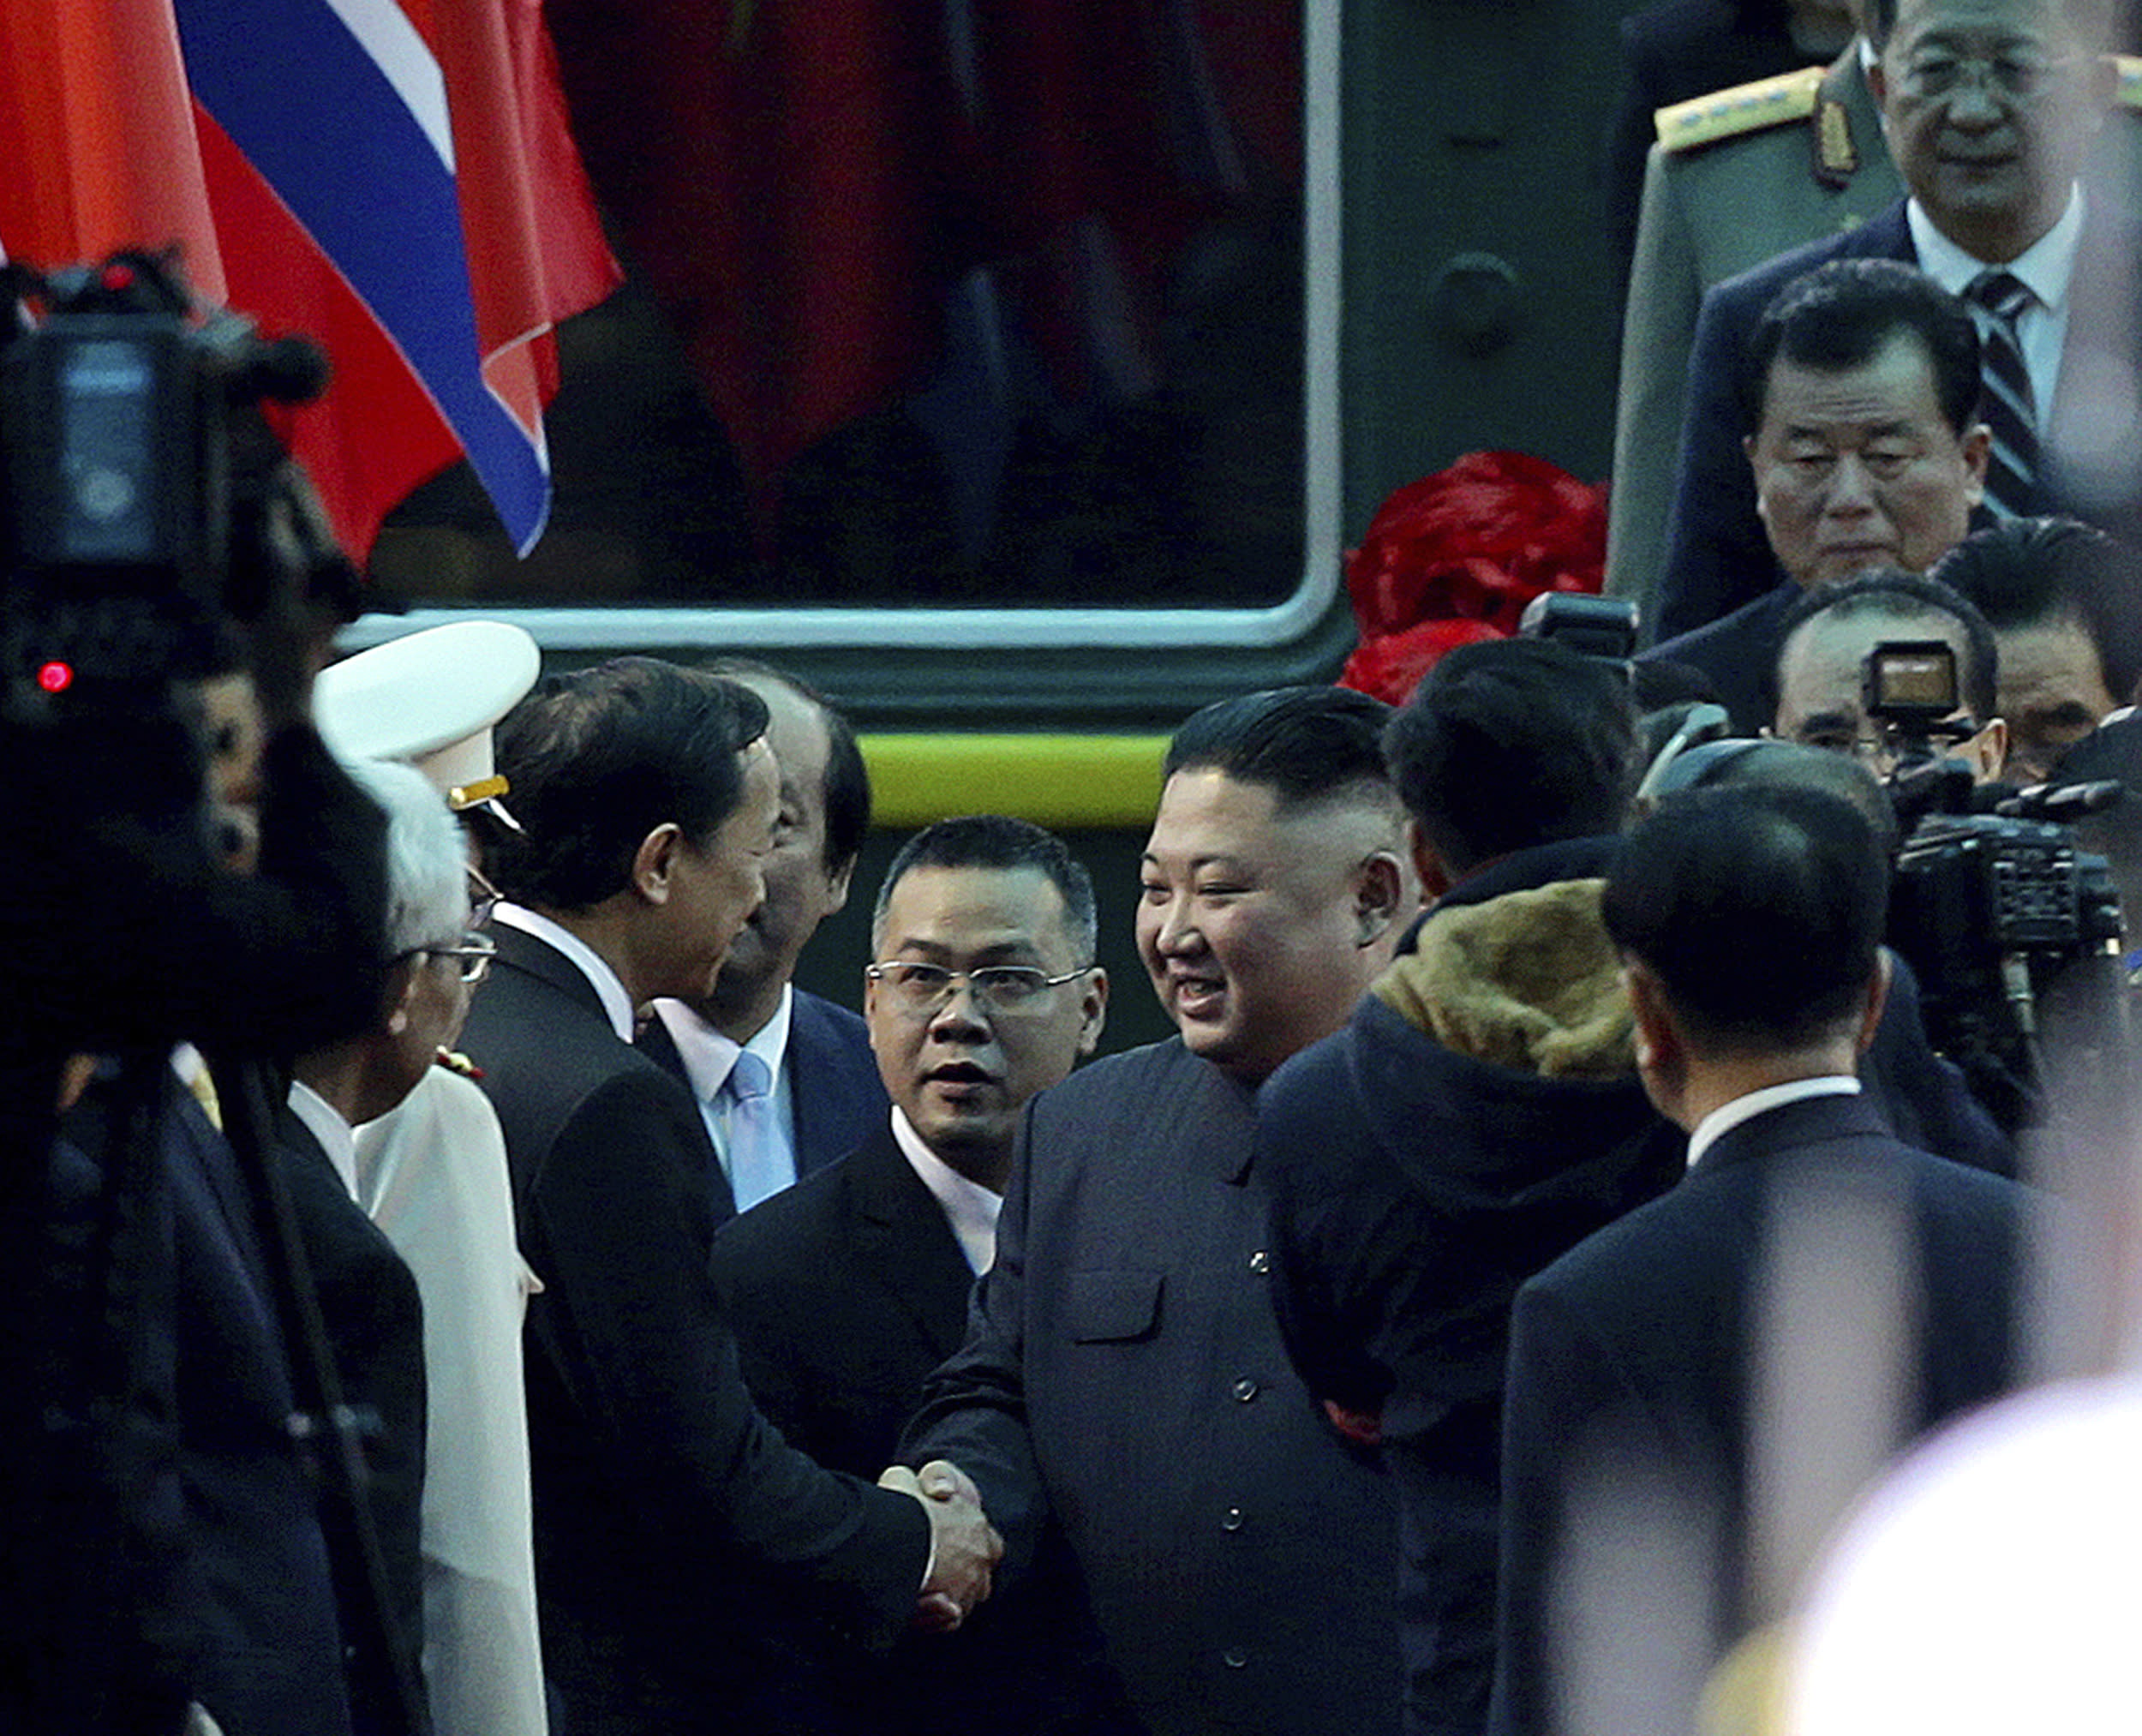 North Korean leader Kim Jong Un, center right, is welcomed upon arrival by train in Dong Dang in Vietnamese border town Tuesday, Feb. 26, 2019, ahead of his second summit with U.S. President Donald Trump. (AP Photo/Minh Hoang)